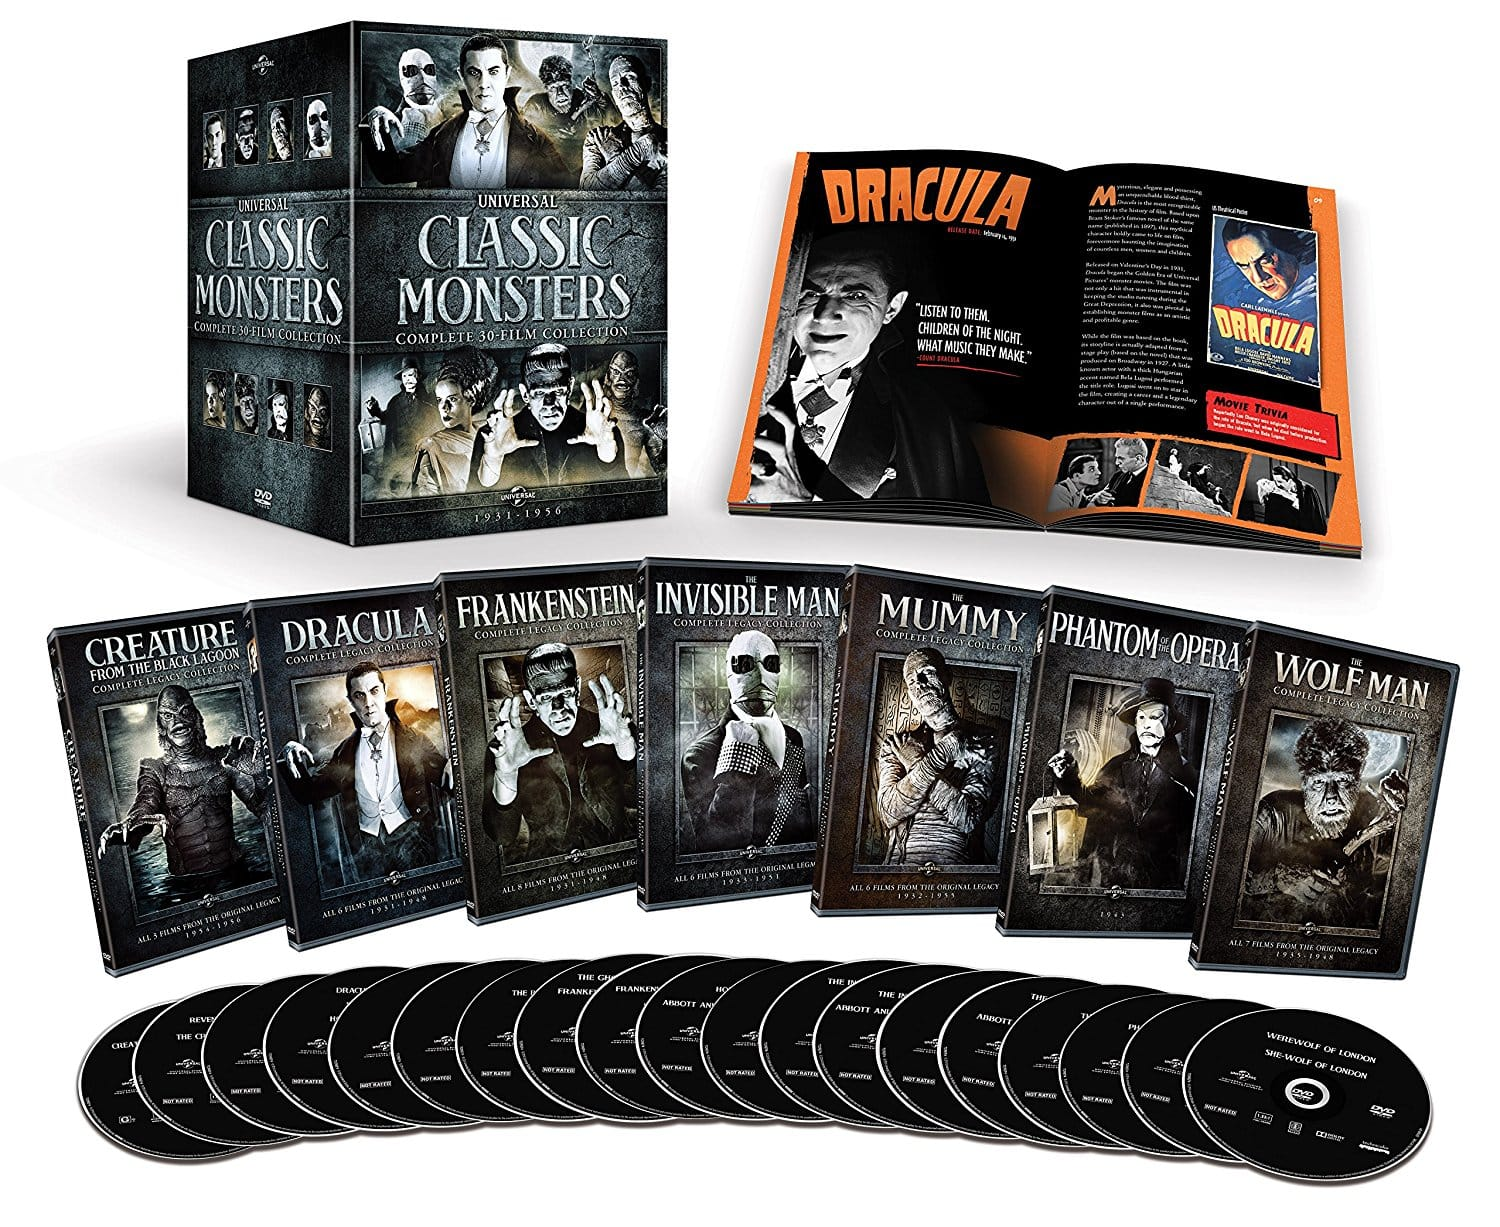 Universal Classic Monsters: Complete 30-Film Collection [DVD] - $35.49 @ Amazon.com